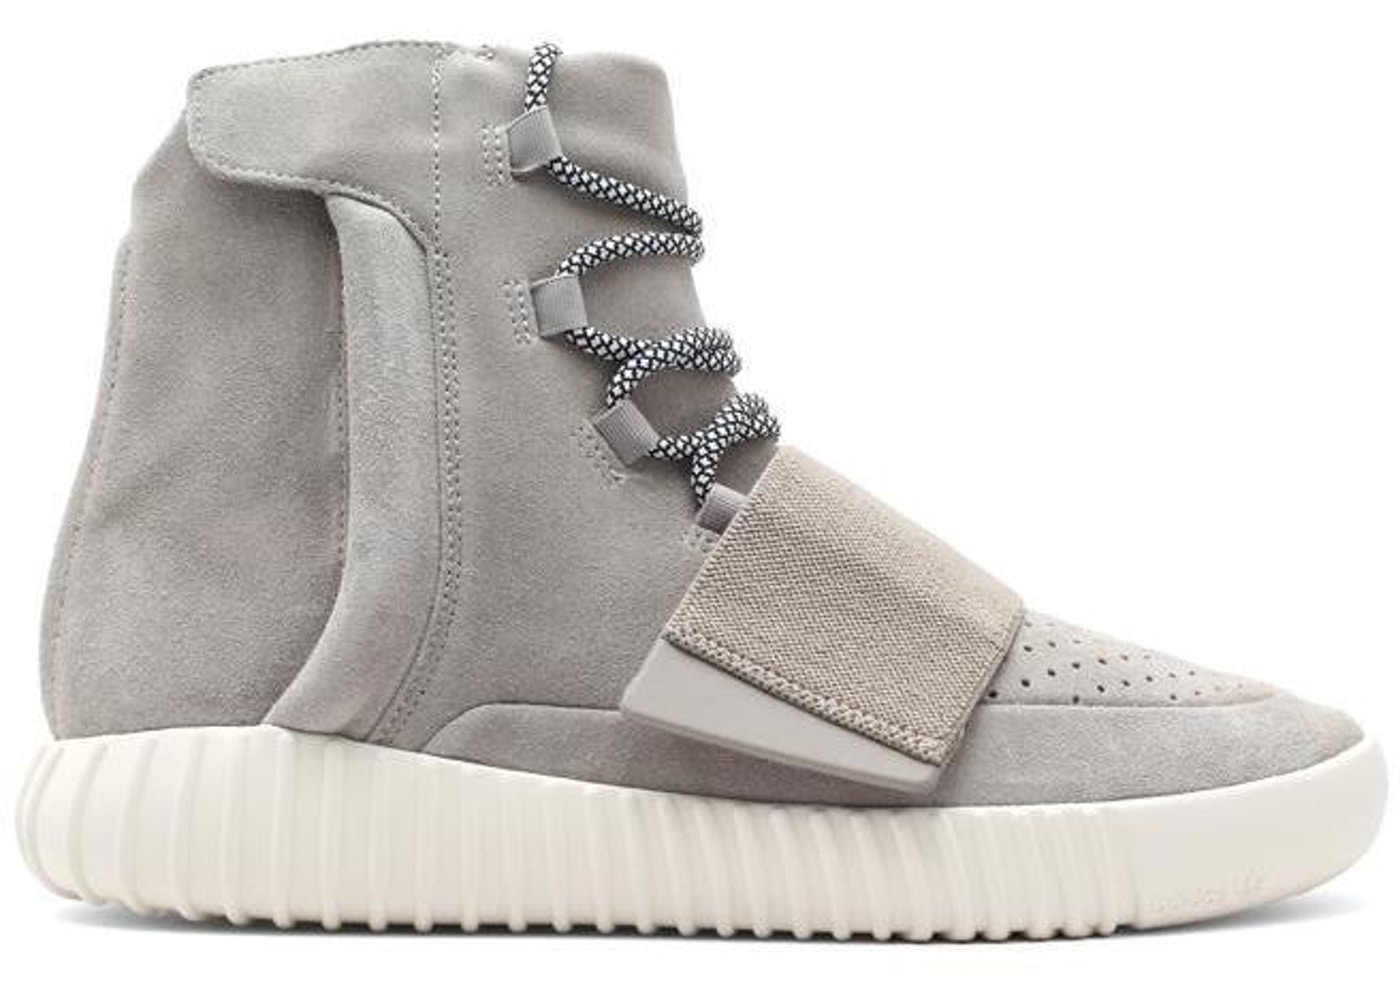 713abbfb928c1 adidas Yeezy Boost 750 OG Light Brown - B35309